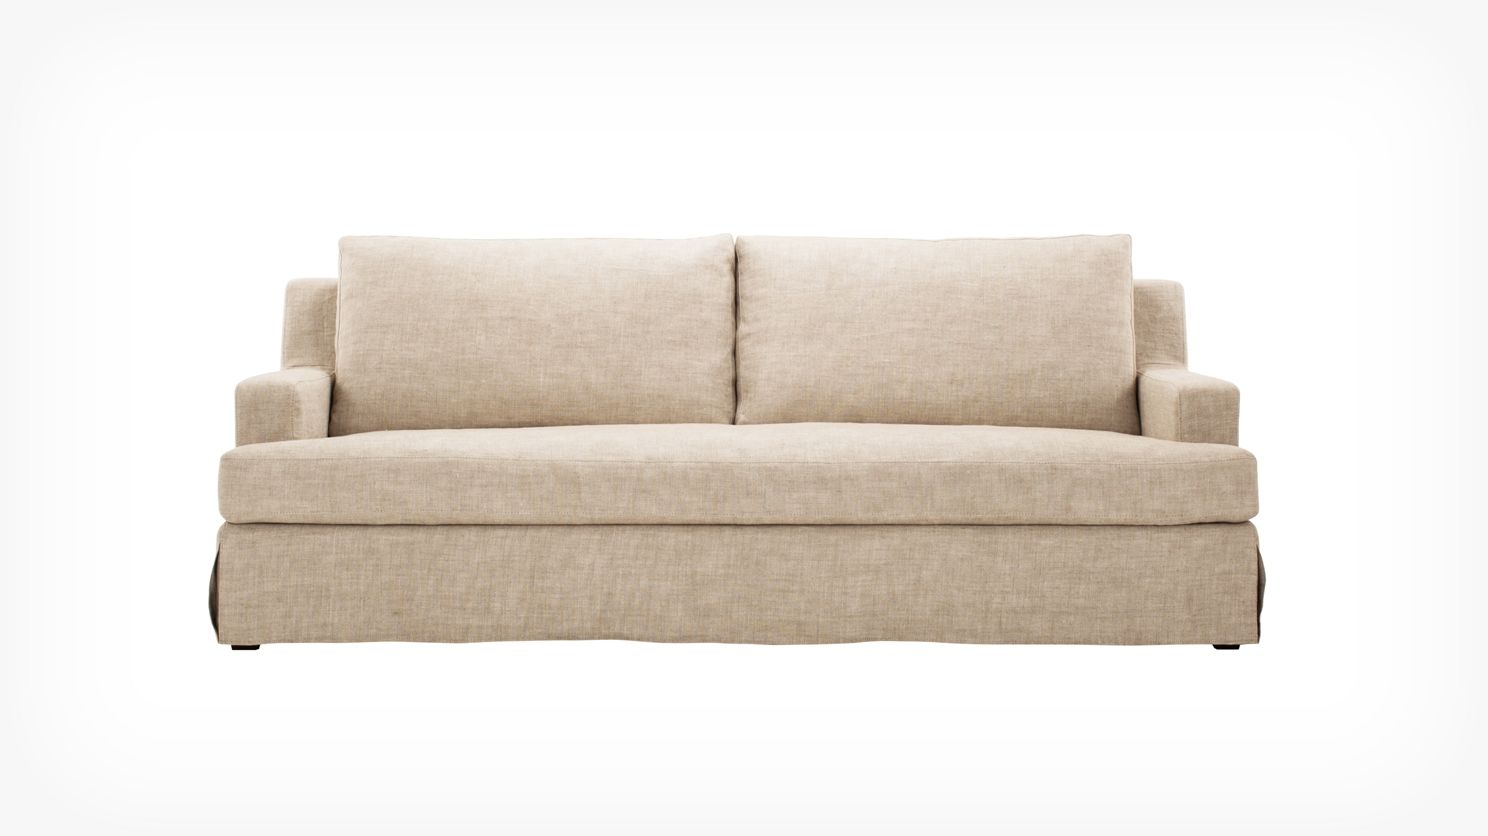 contemporary sofas at target collection-New sofas at Target Décor